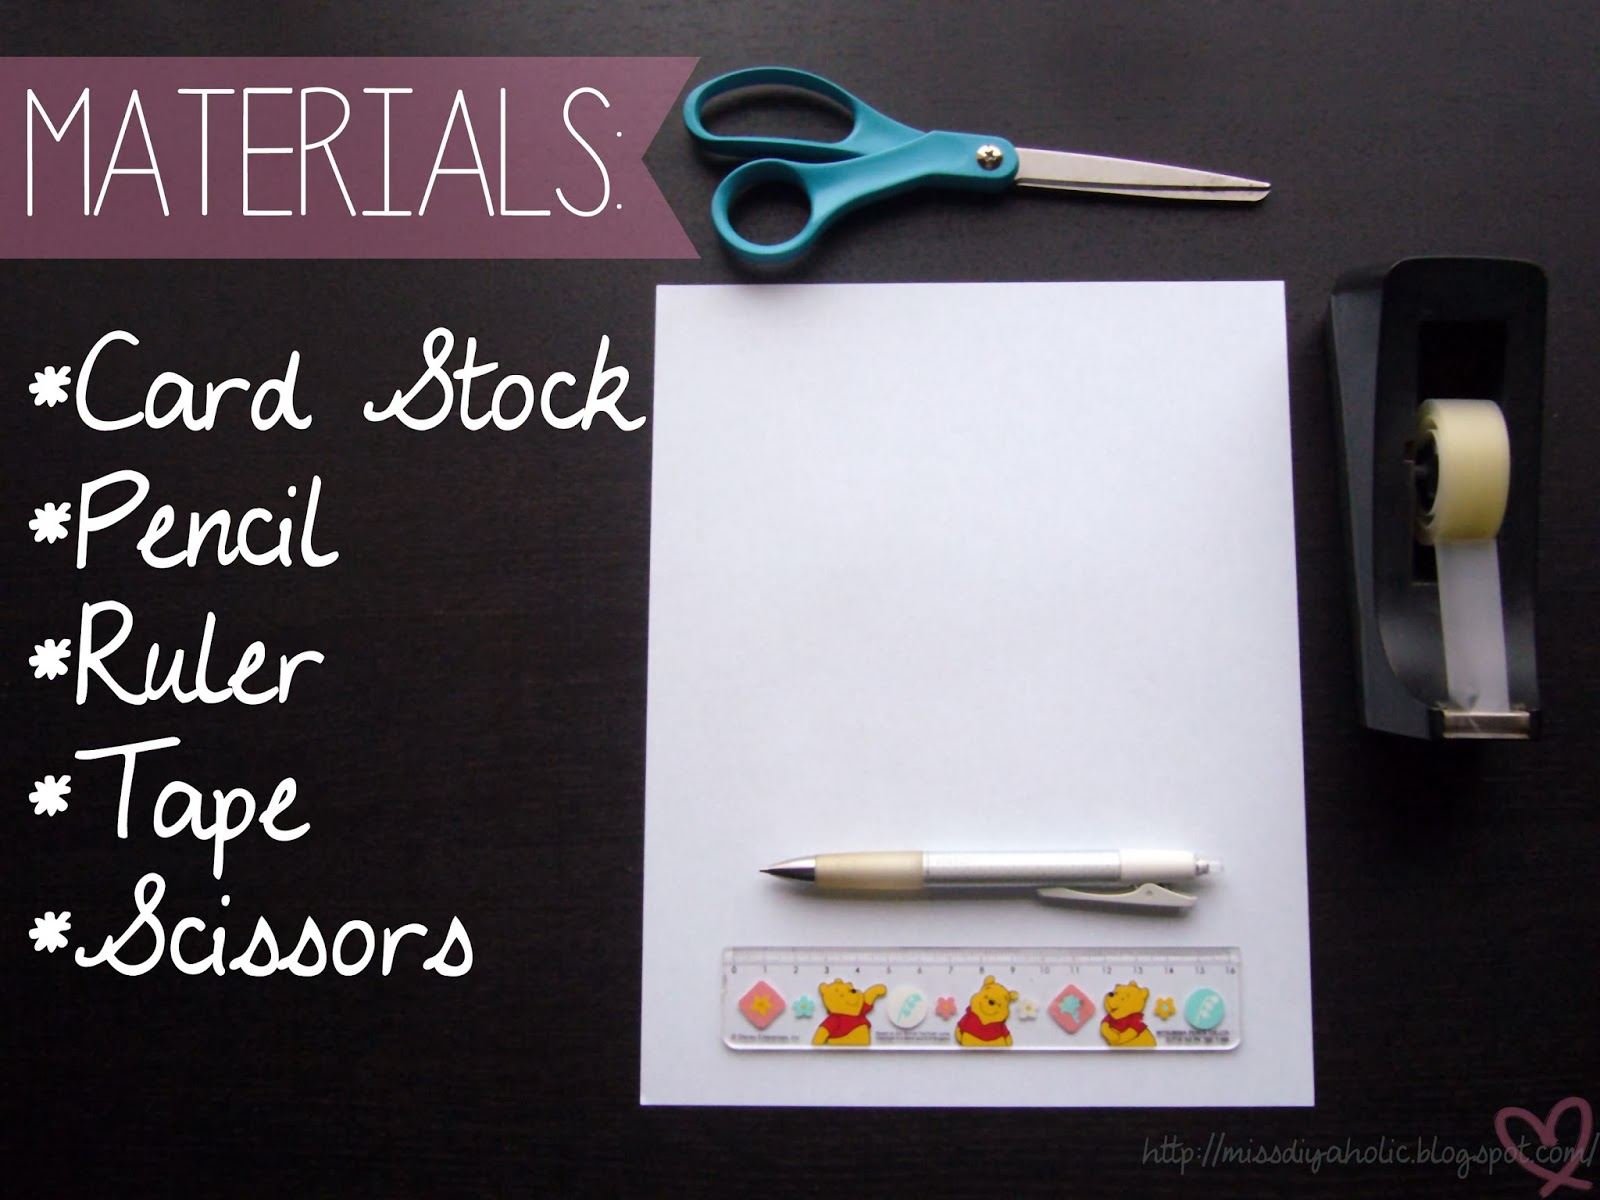 The wonderful world of diy diy gift box printables with that being said this week im going to show you guys how to make these little gift boxes that i would have used for valentines day solutioingenieria Choice Image